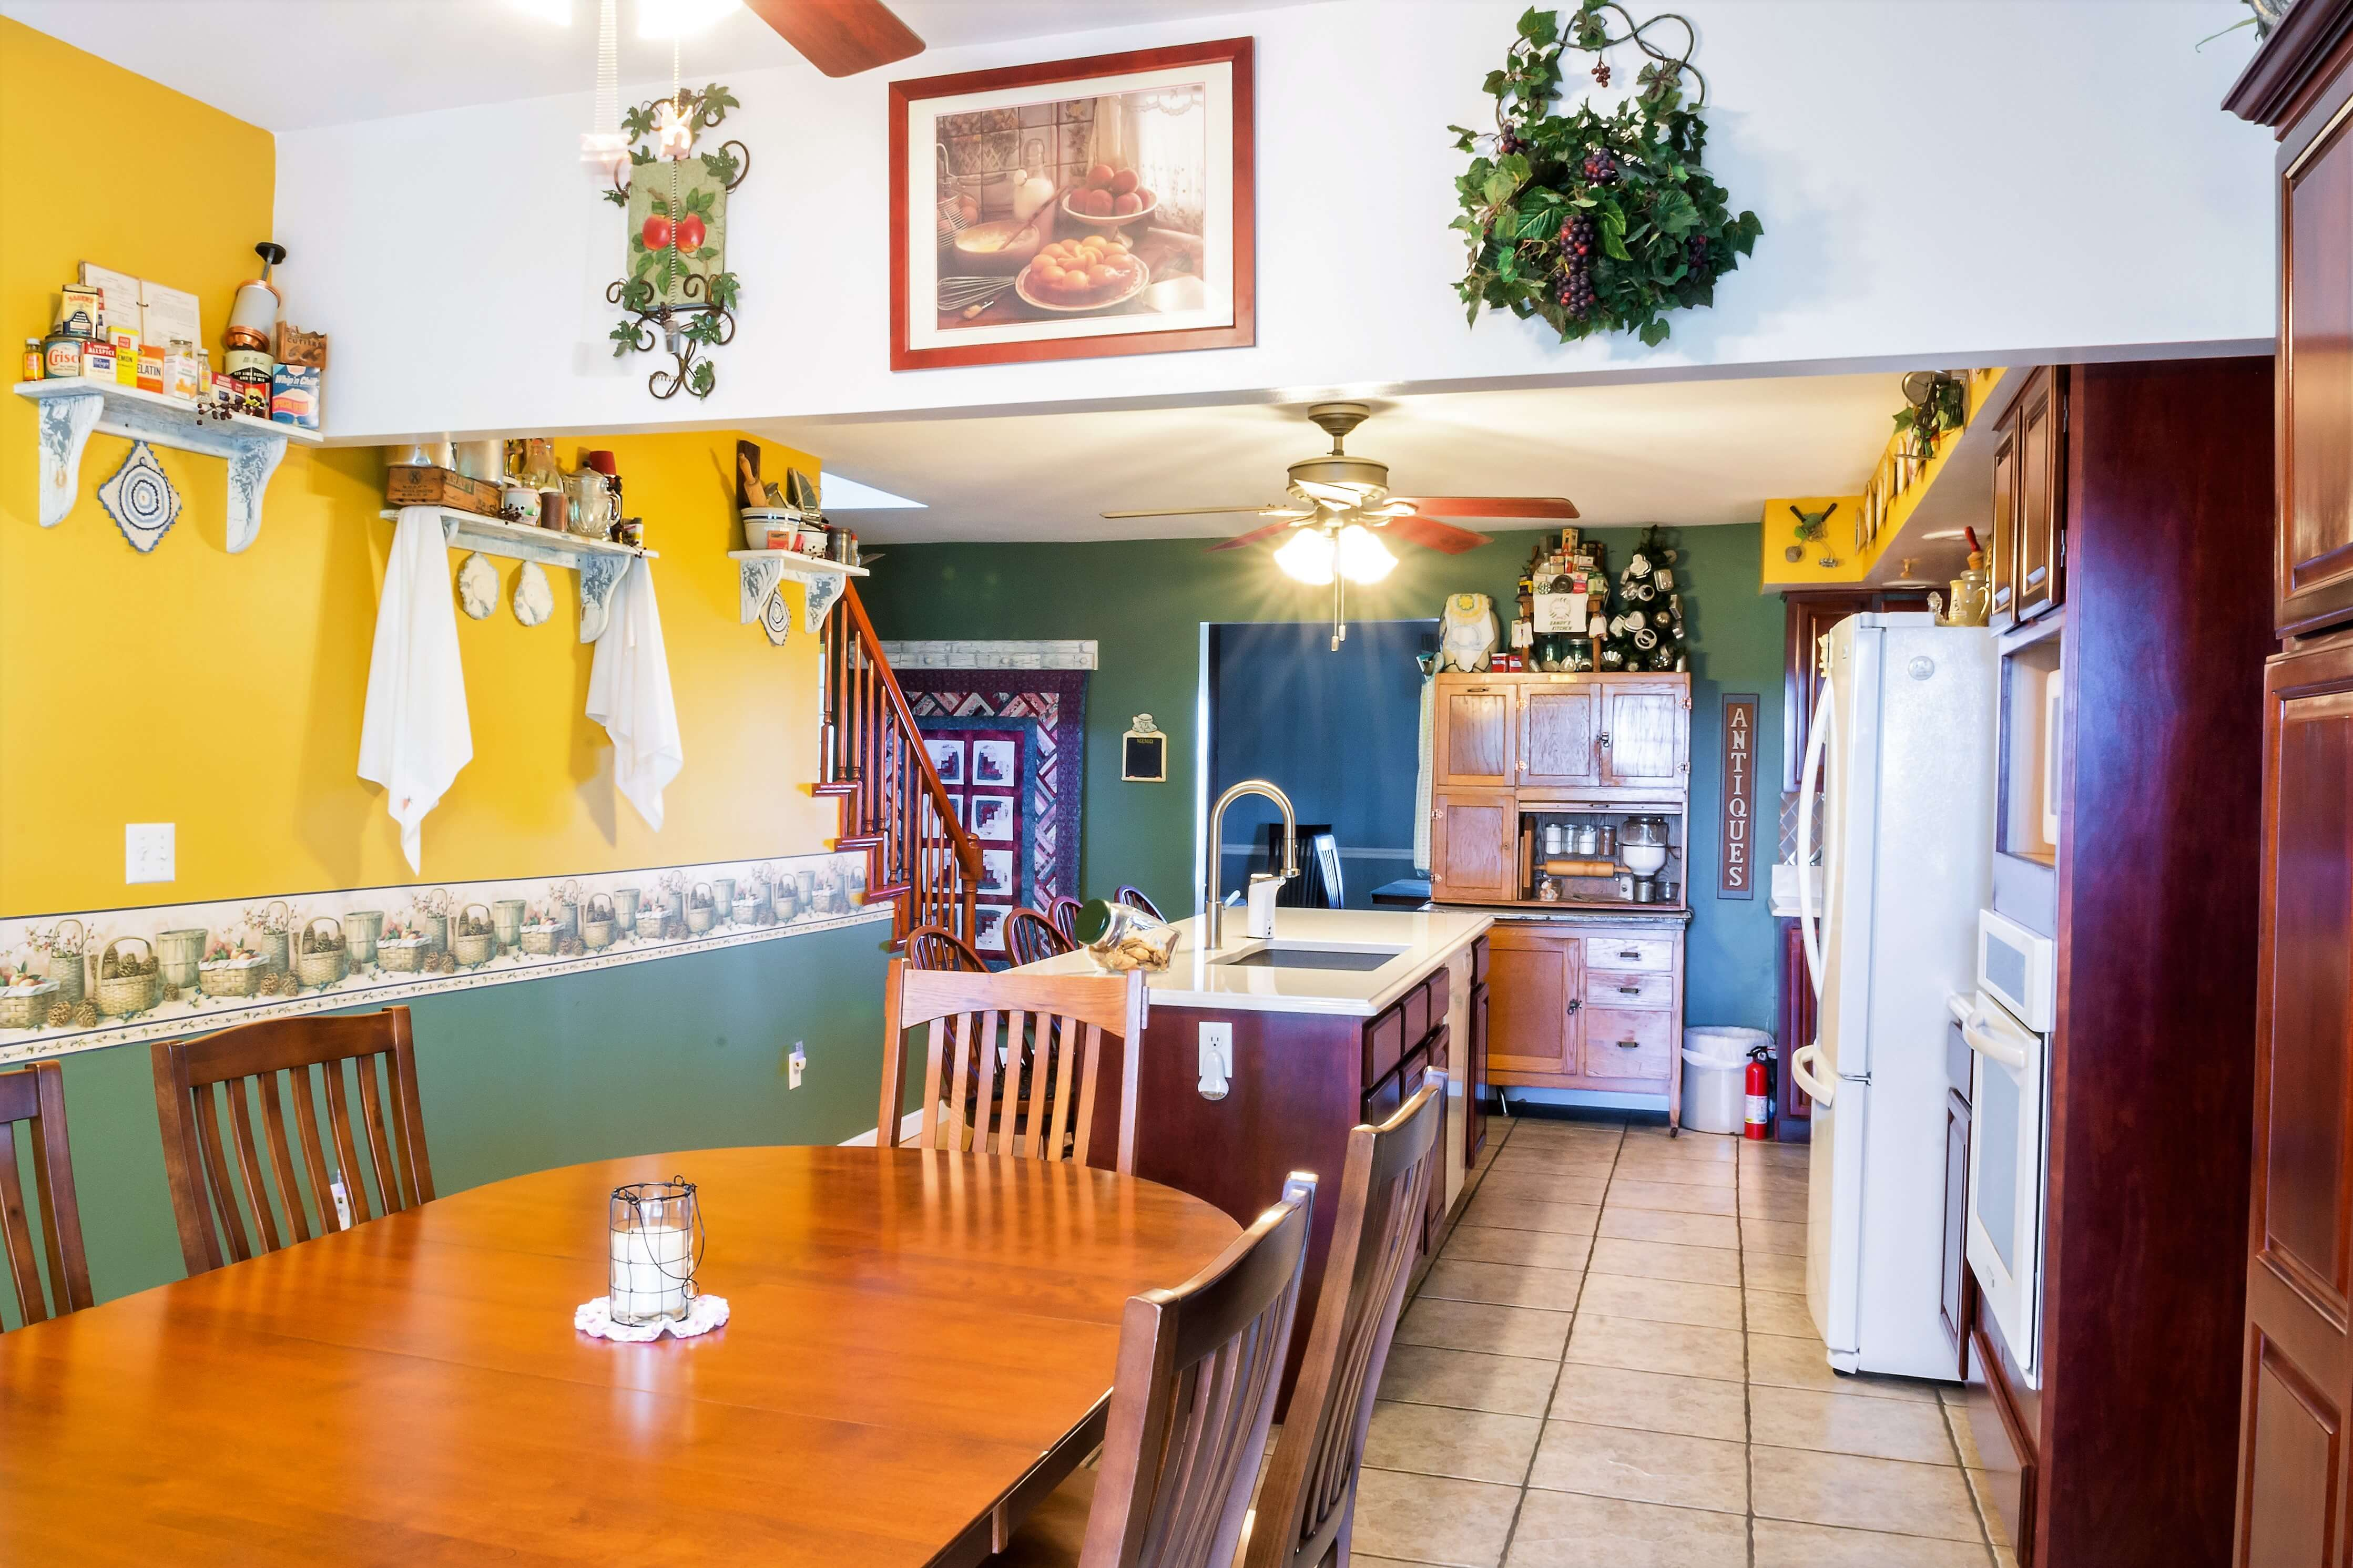 A kitchen with wooden cabinets and a dining room table at Timmermann House Bed & Breakfast.